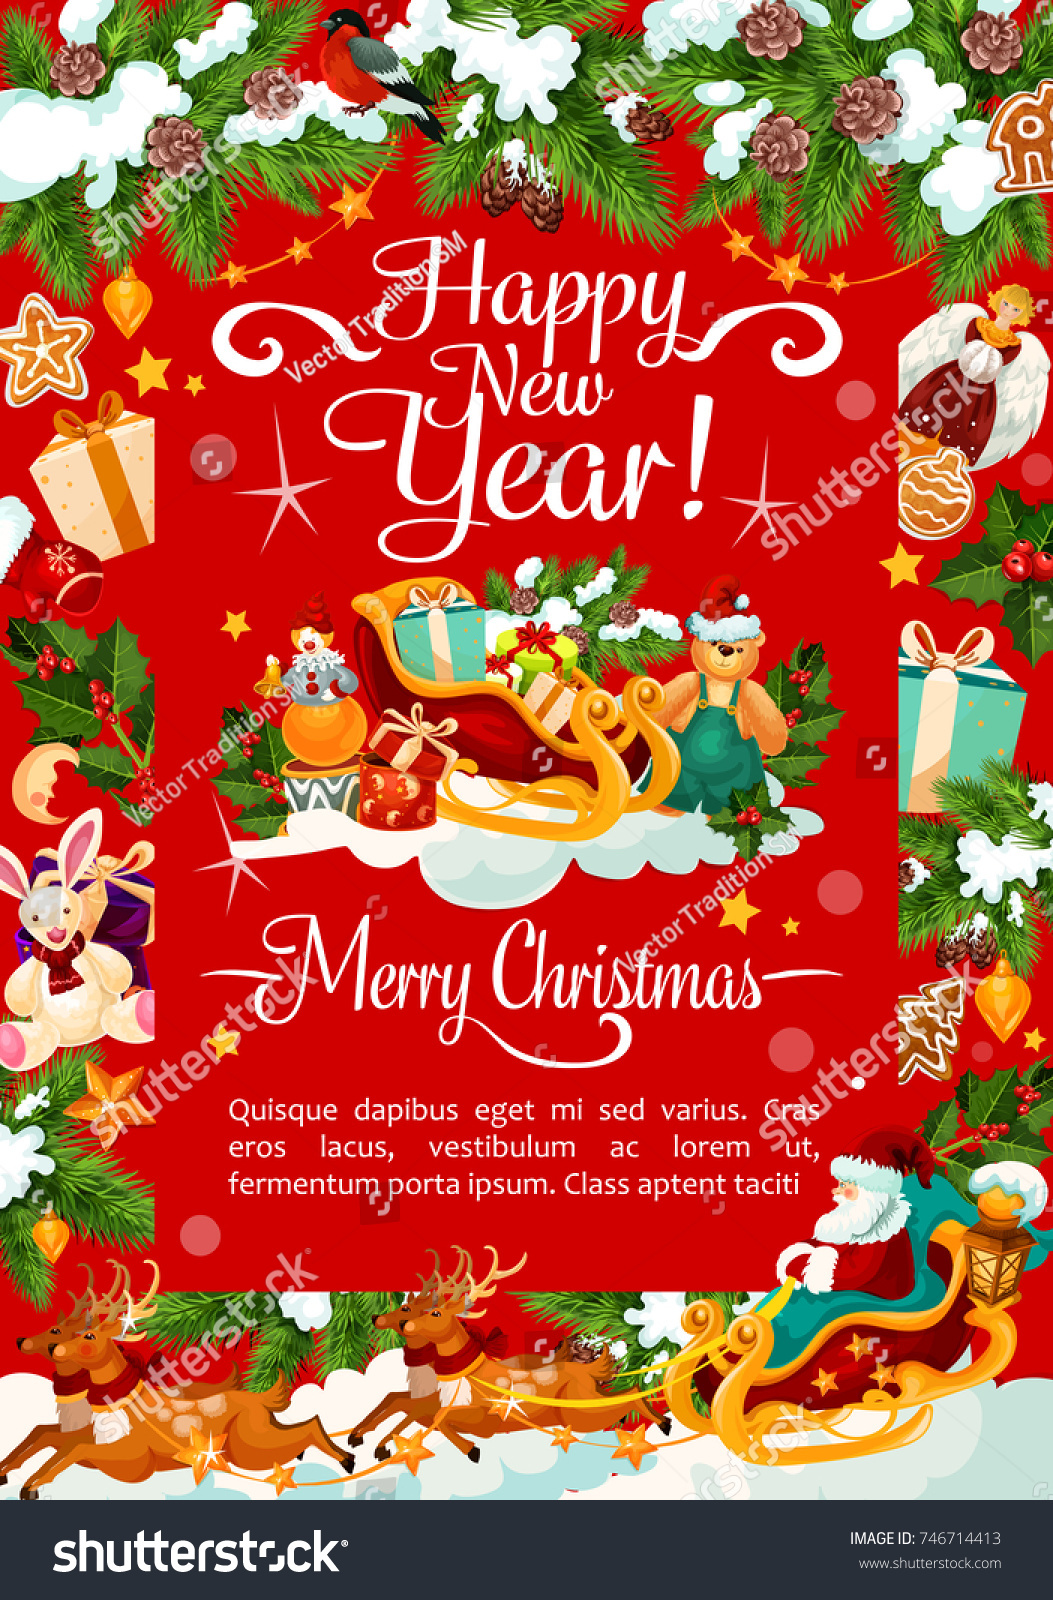 Happy New Year Merry Christmas Wish Stock Vector Hd Royalty Free